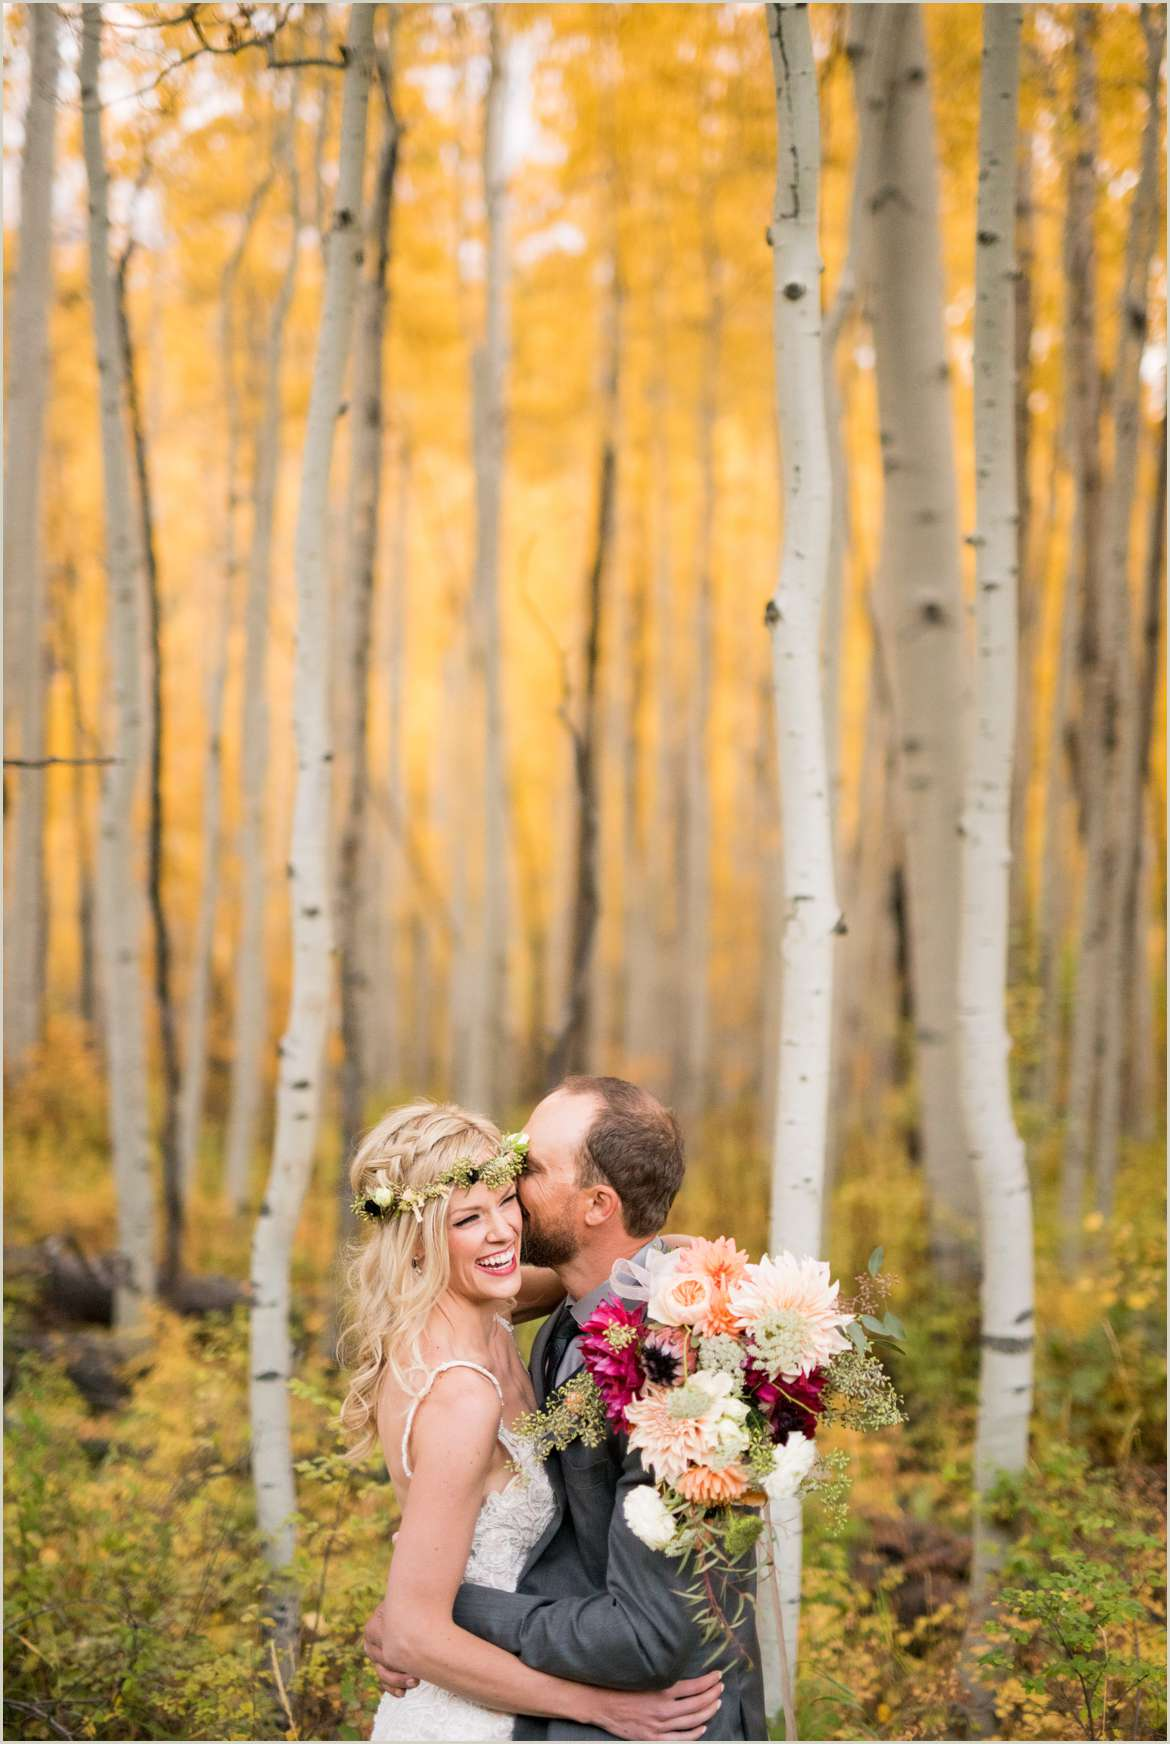 wedding photos in aspens in peak fall